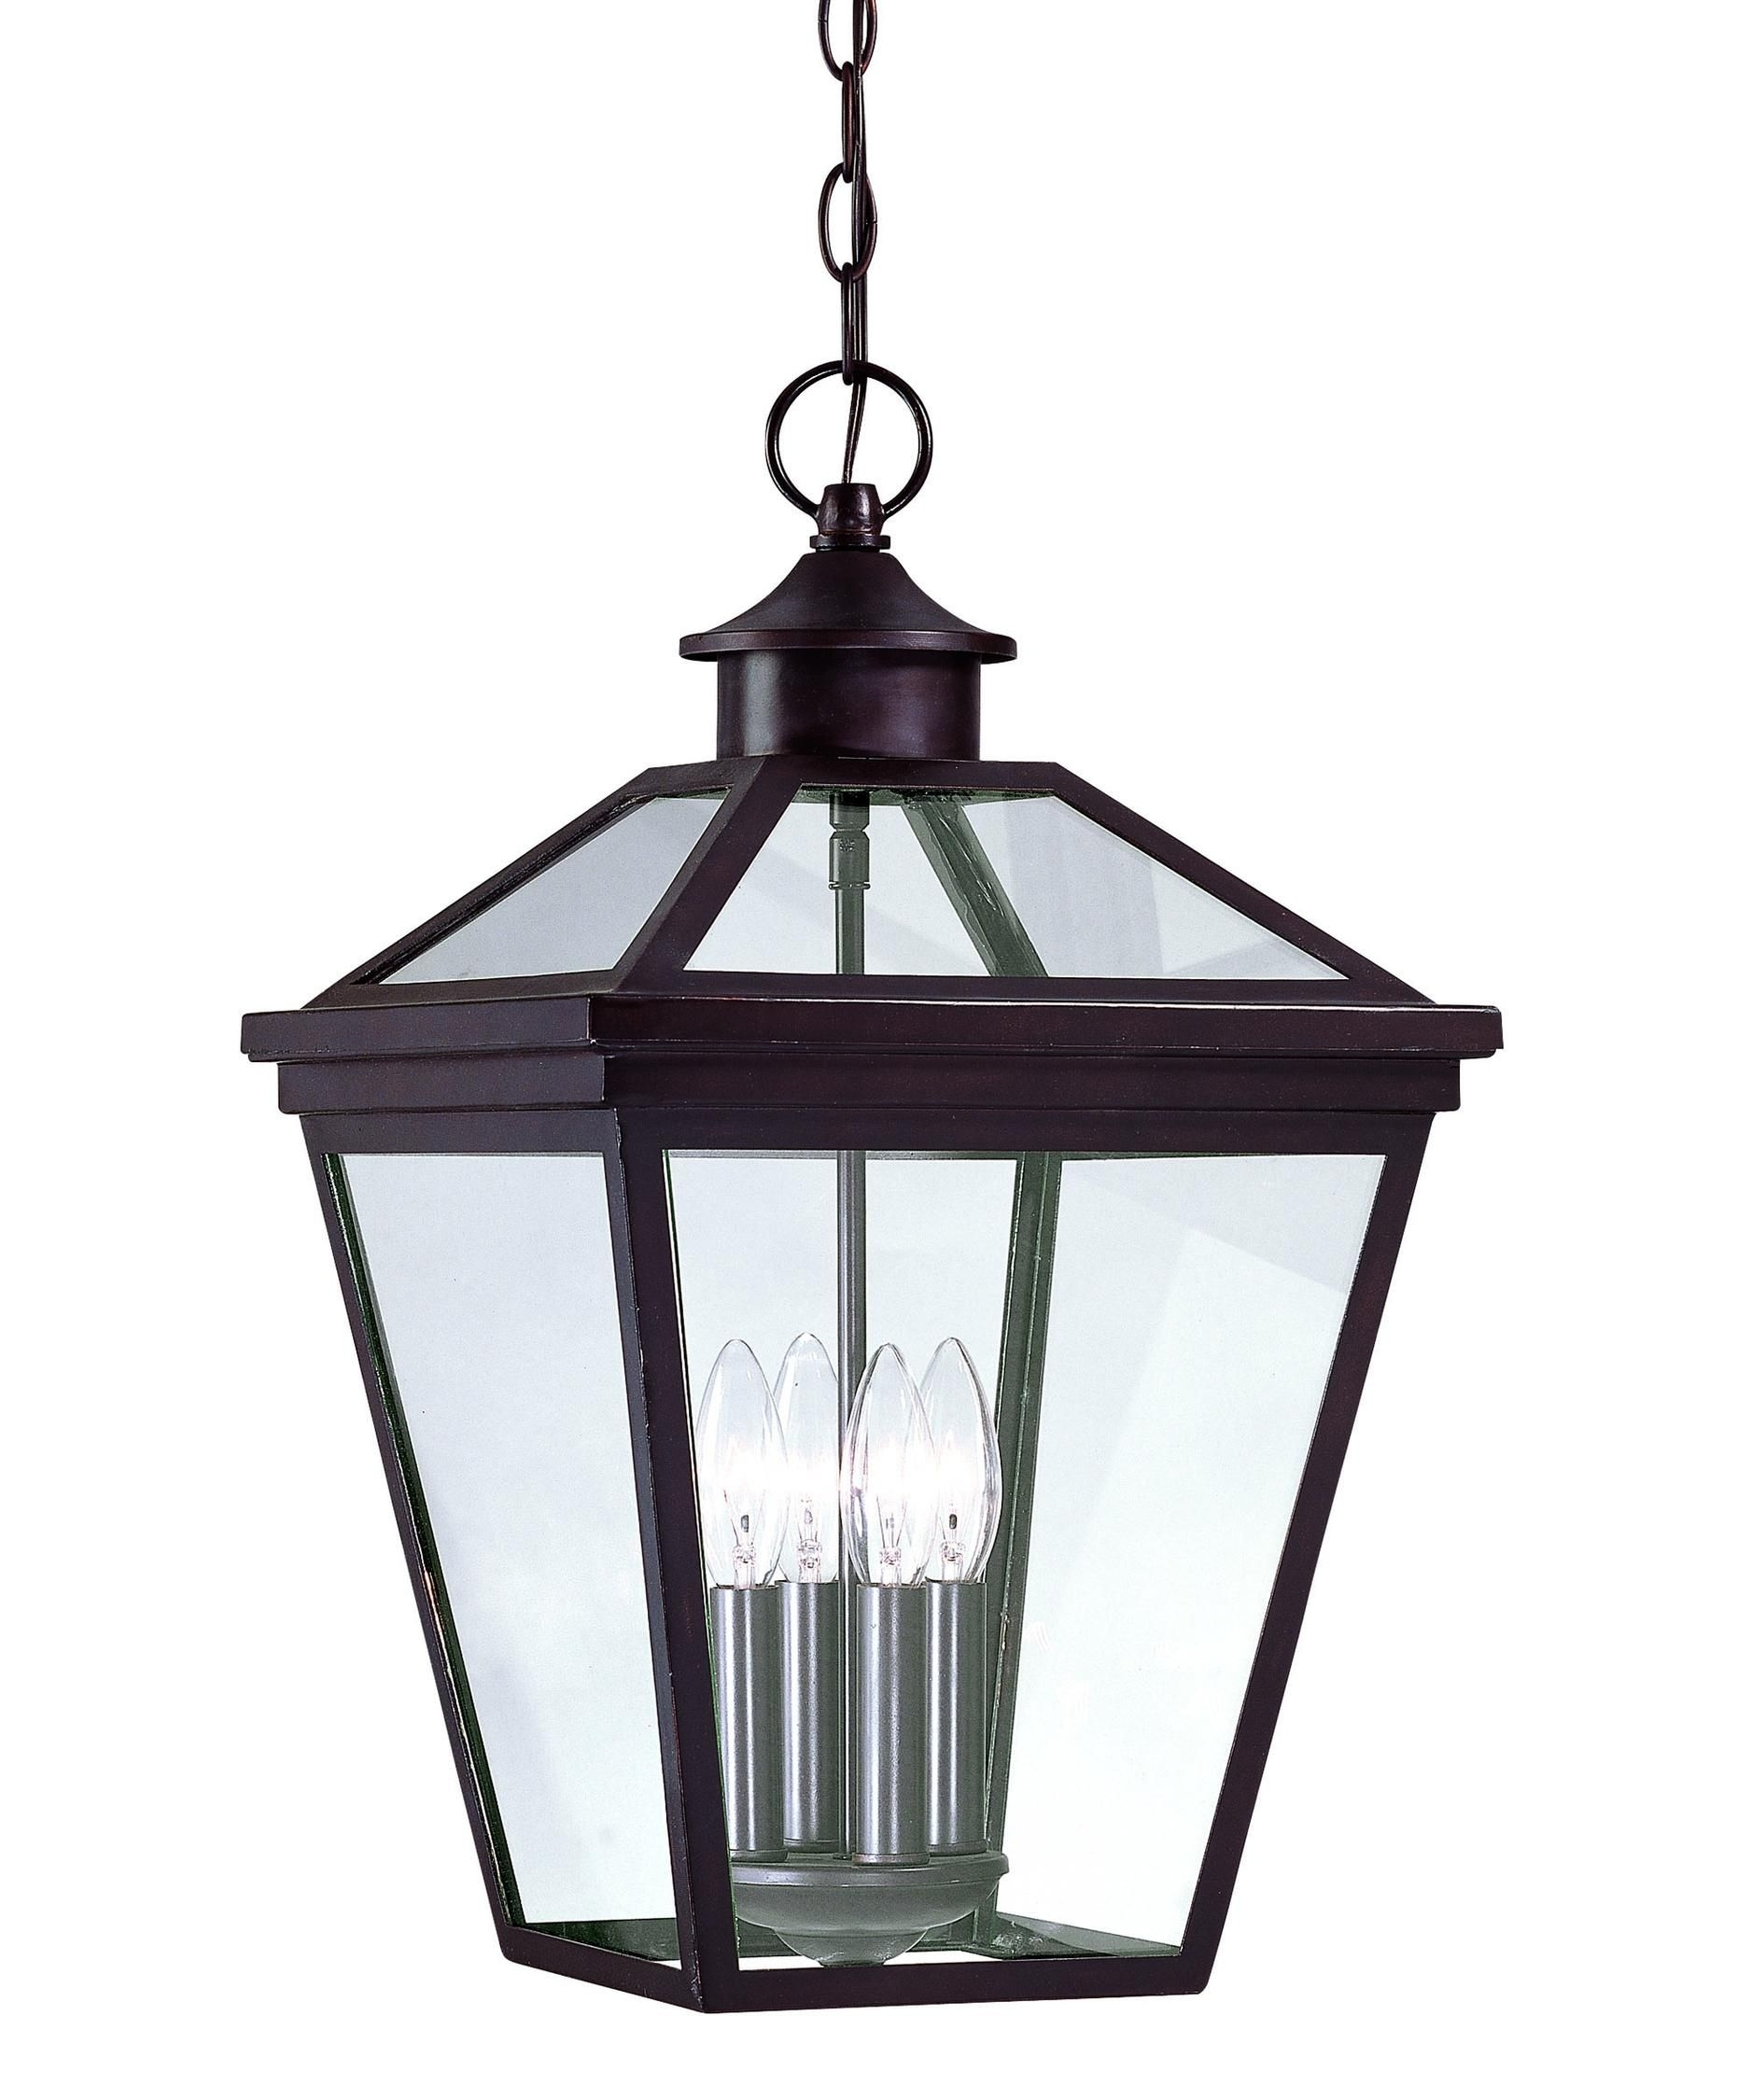 Savoy House Ellijay 4 Light Outdoor Hanging Lantern | Capitol Inside Outdoor Hanging Lights For Porch (#14 of 15)